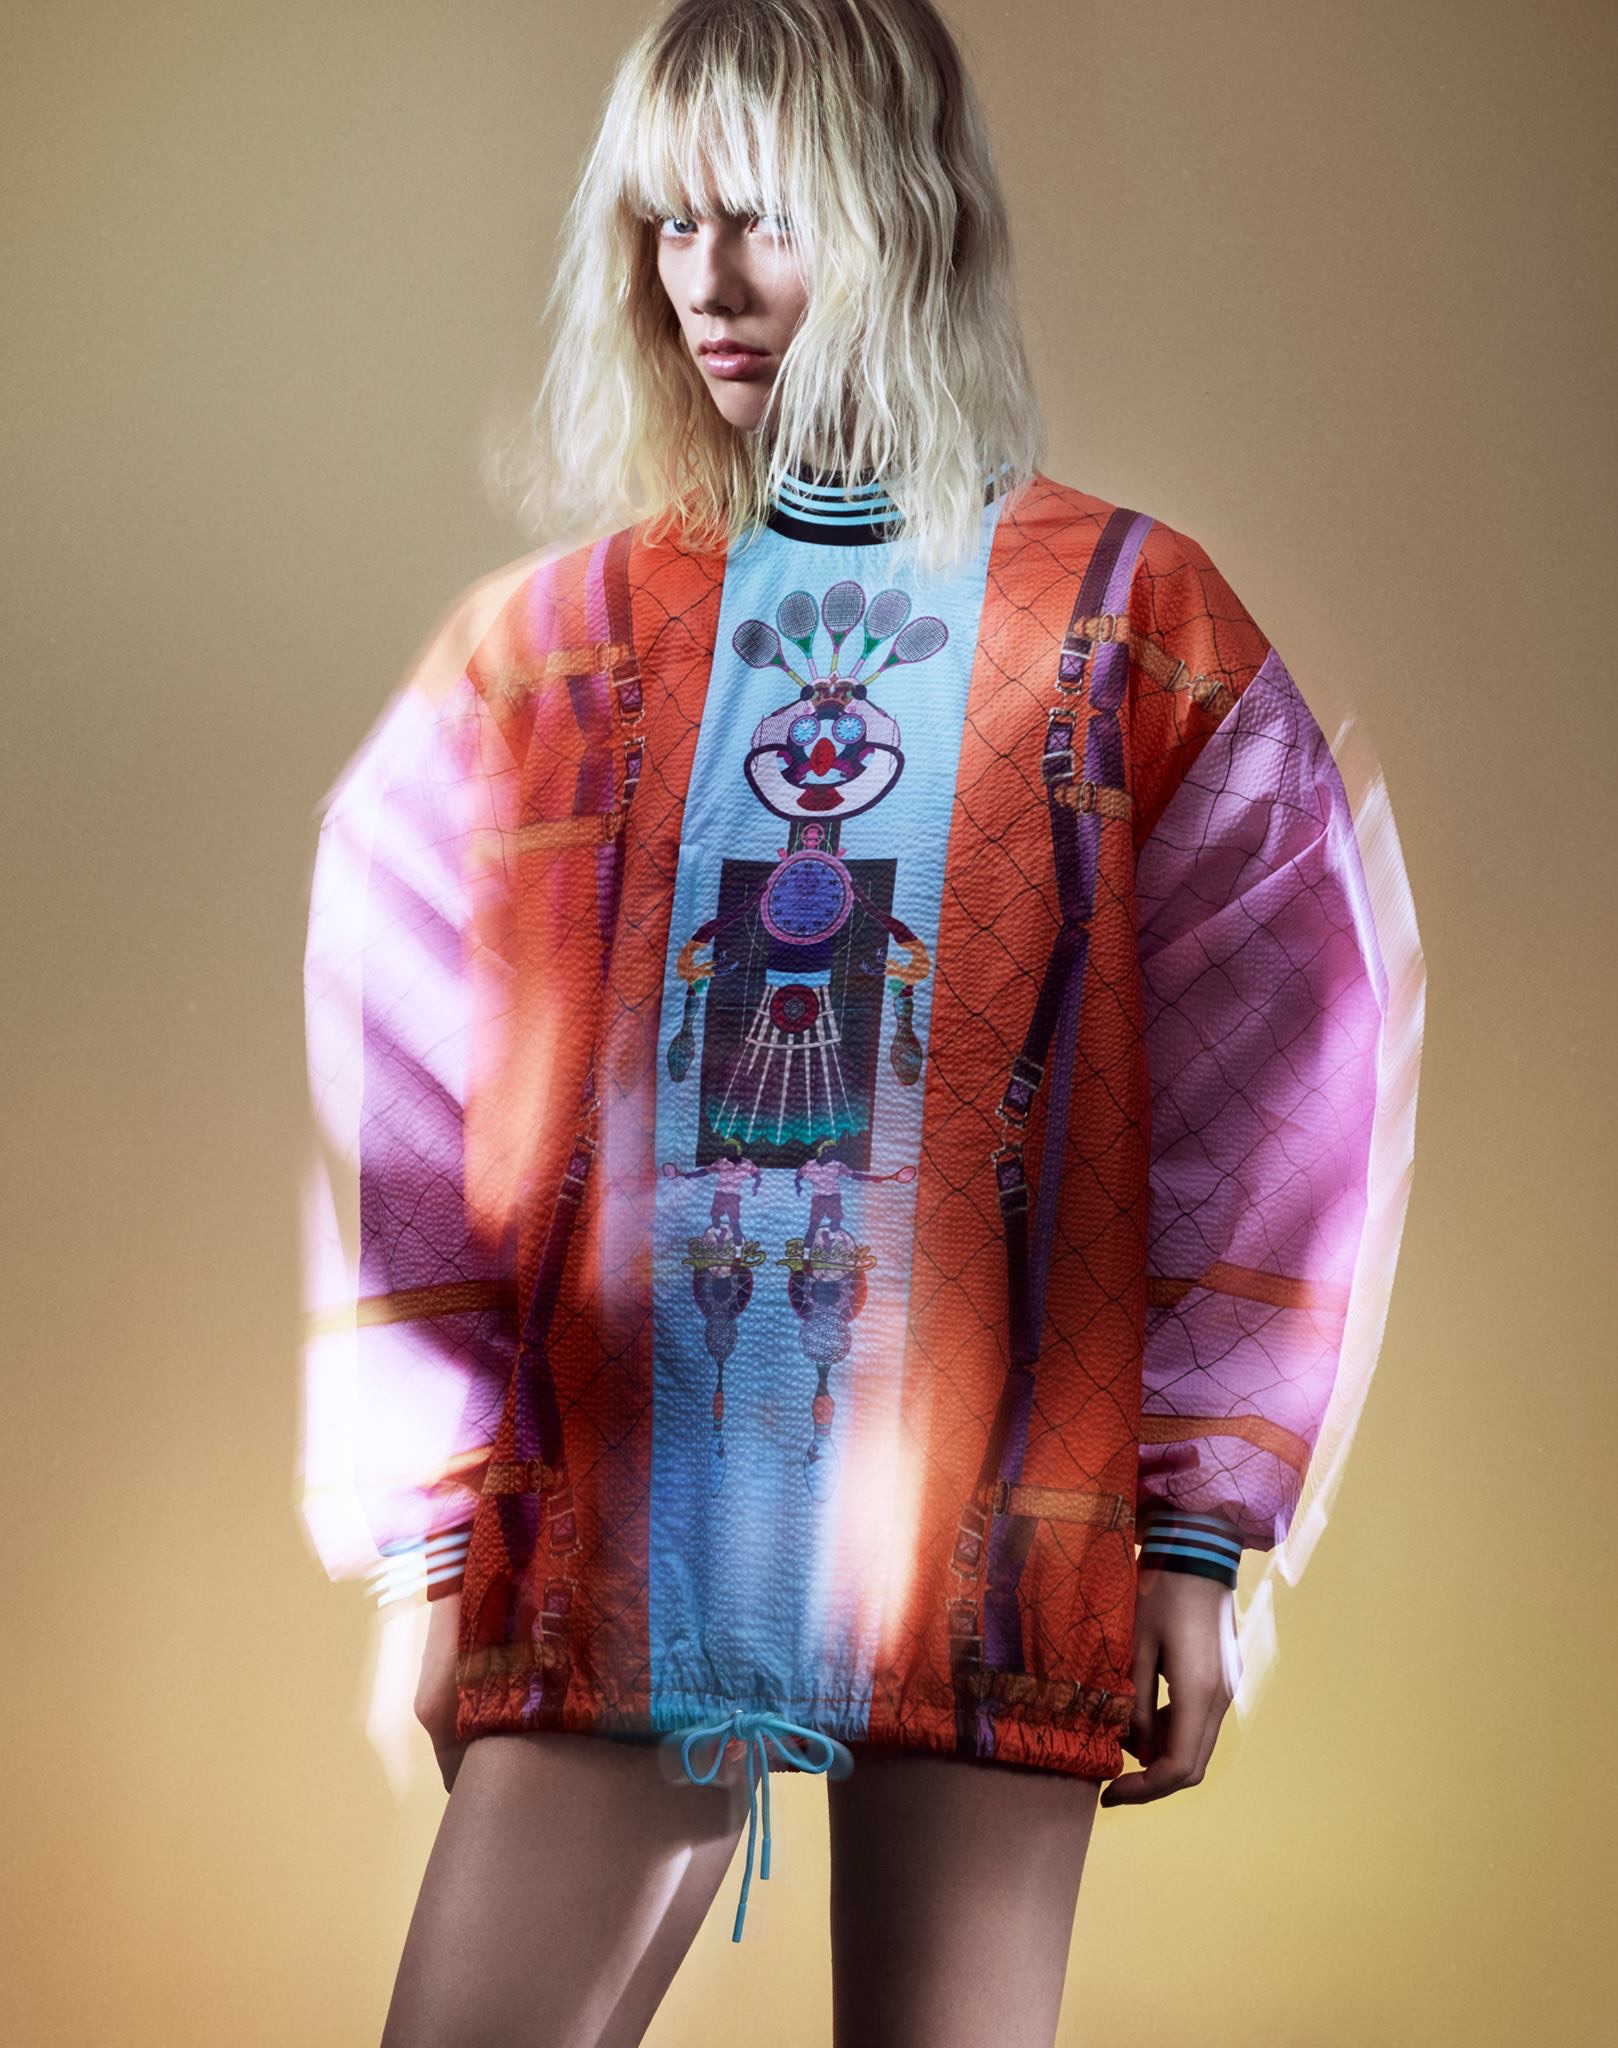 Adidas Originals x Mary Katrantzou Summer 2015 Collection